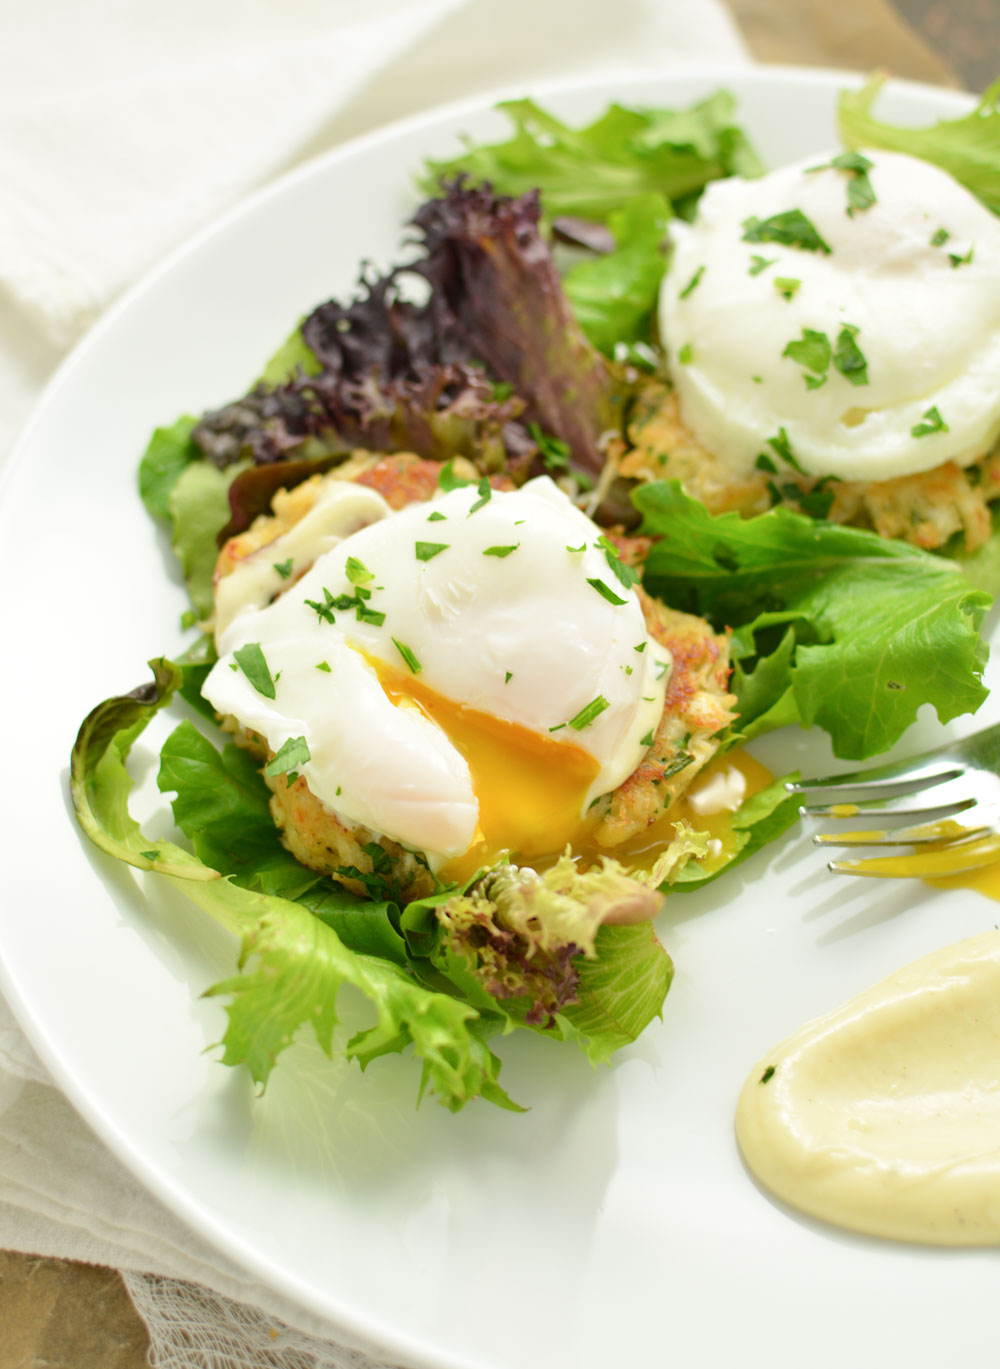 Crab Cake Benedict with Almond-Mustard Sauce is the perfect brunch recipe any time of year!